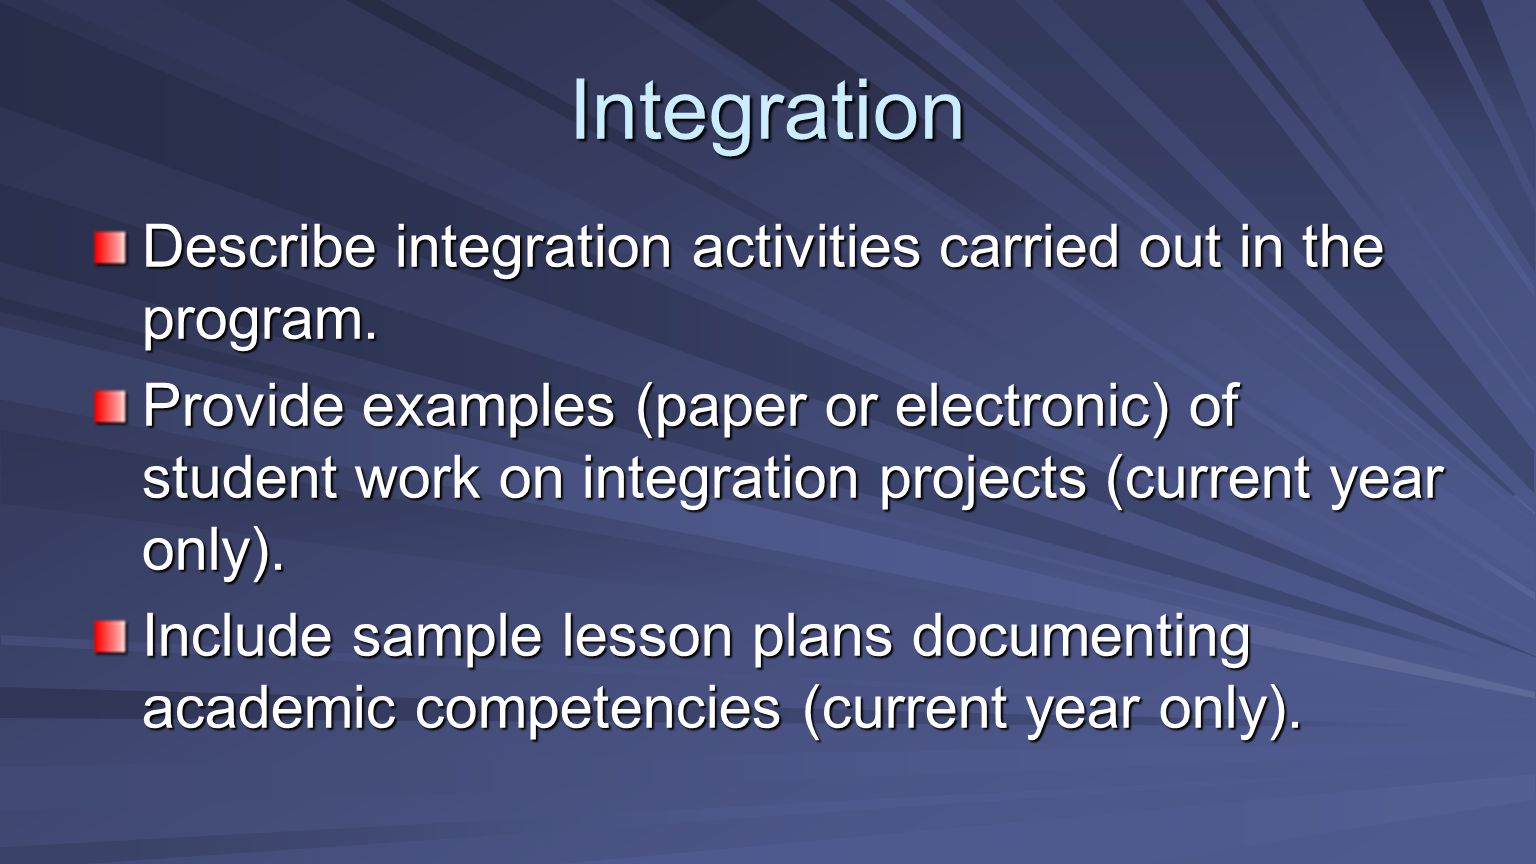 Integration Describe integration activities carried out in the program.